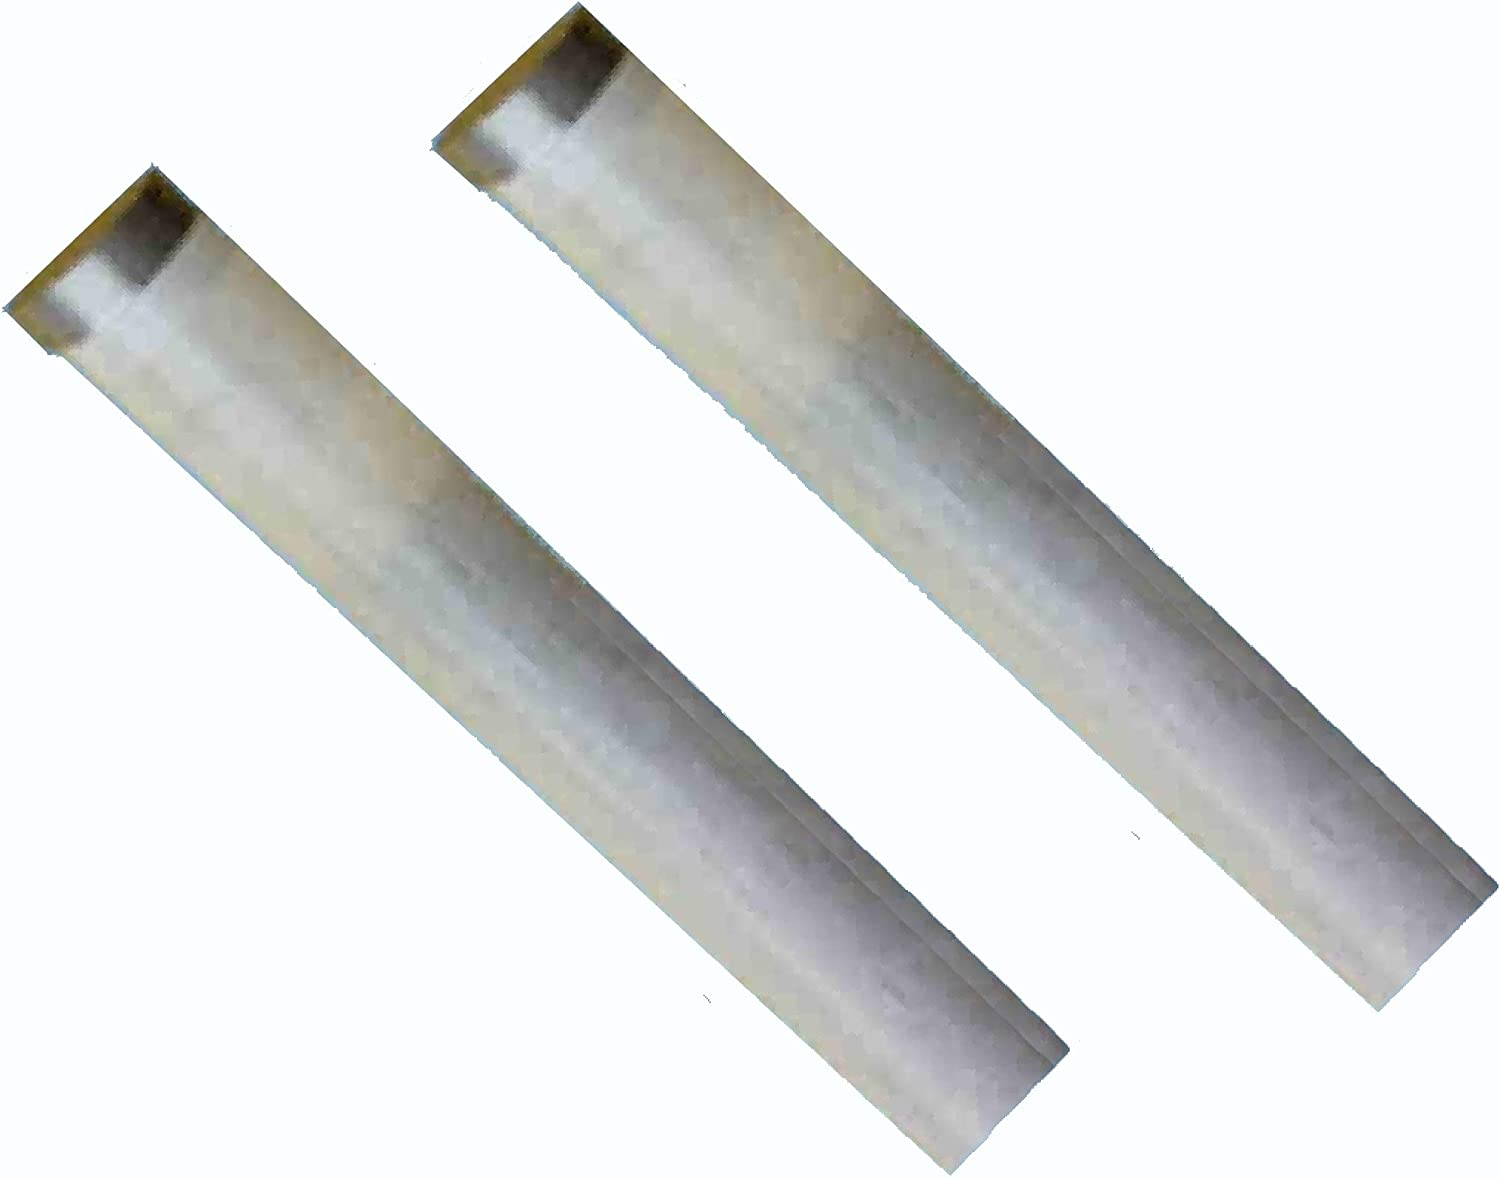 ELEMENTERY LIMITED 2 X Dimplex Type Silica Infrared Electric Fire Bar Glass Element BF9450 650W 356mm//14